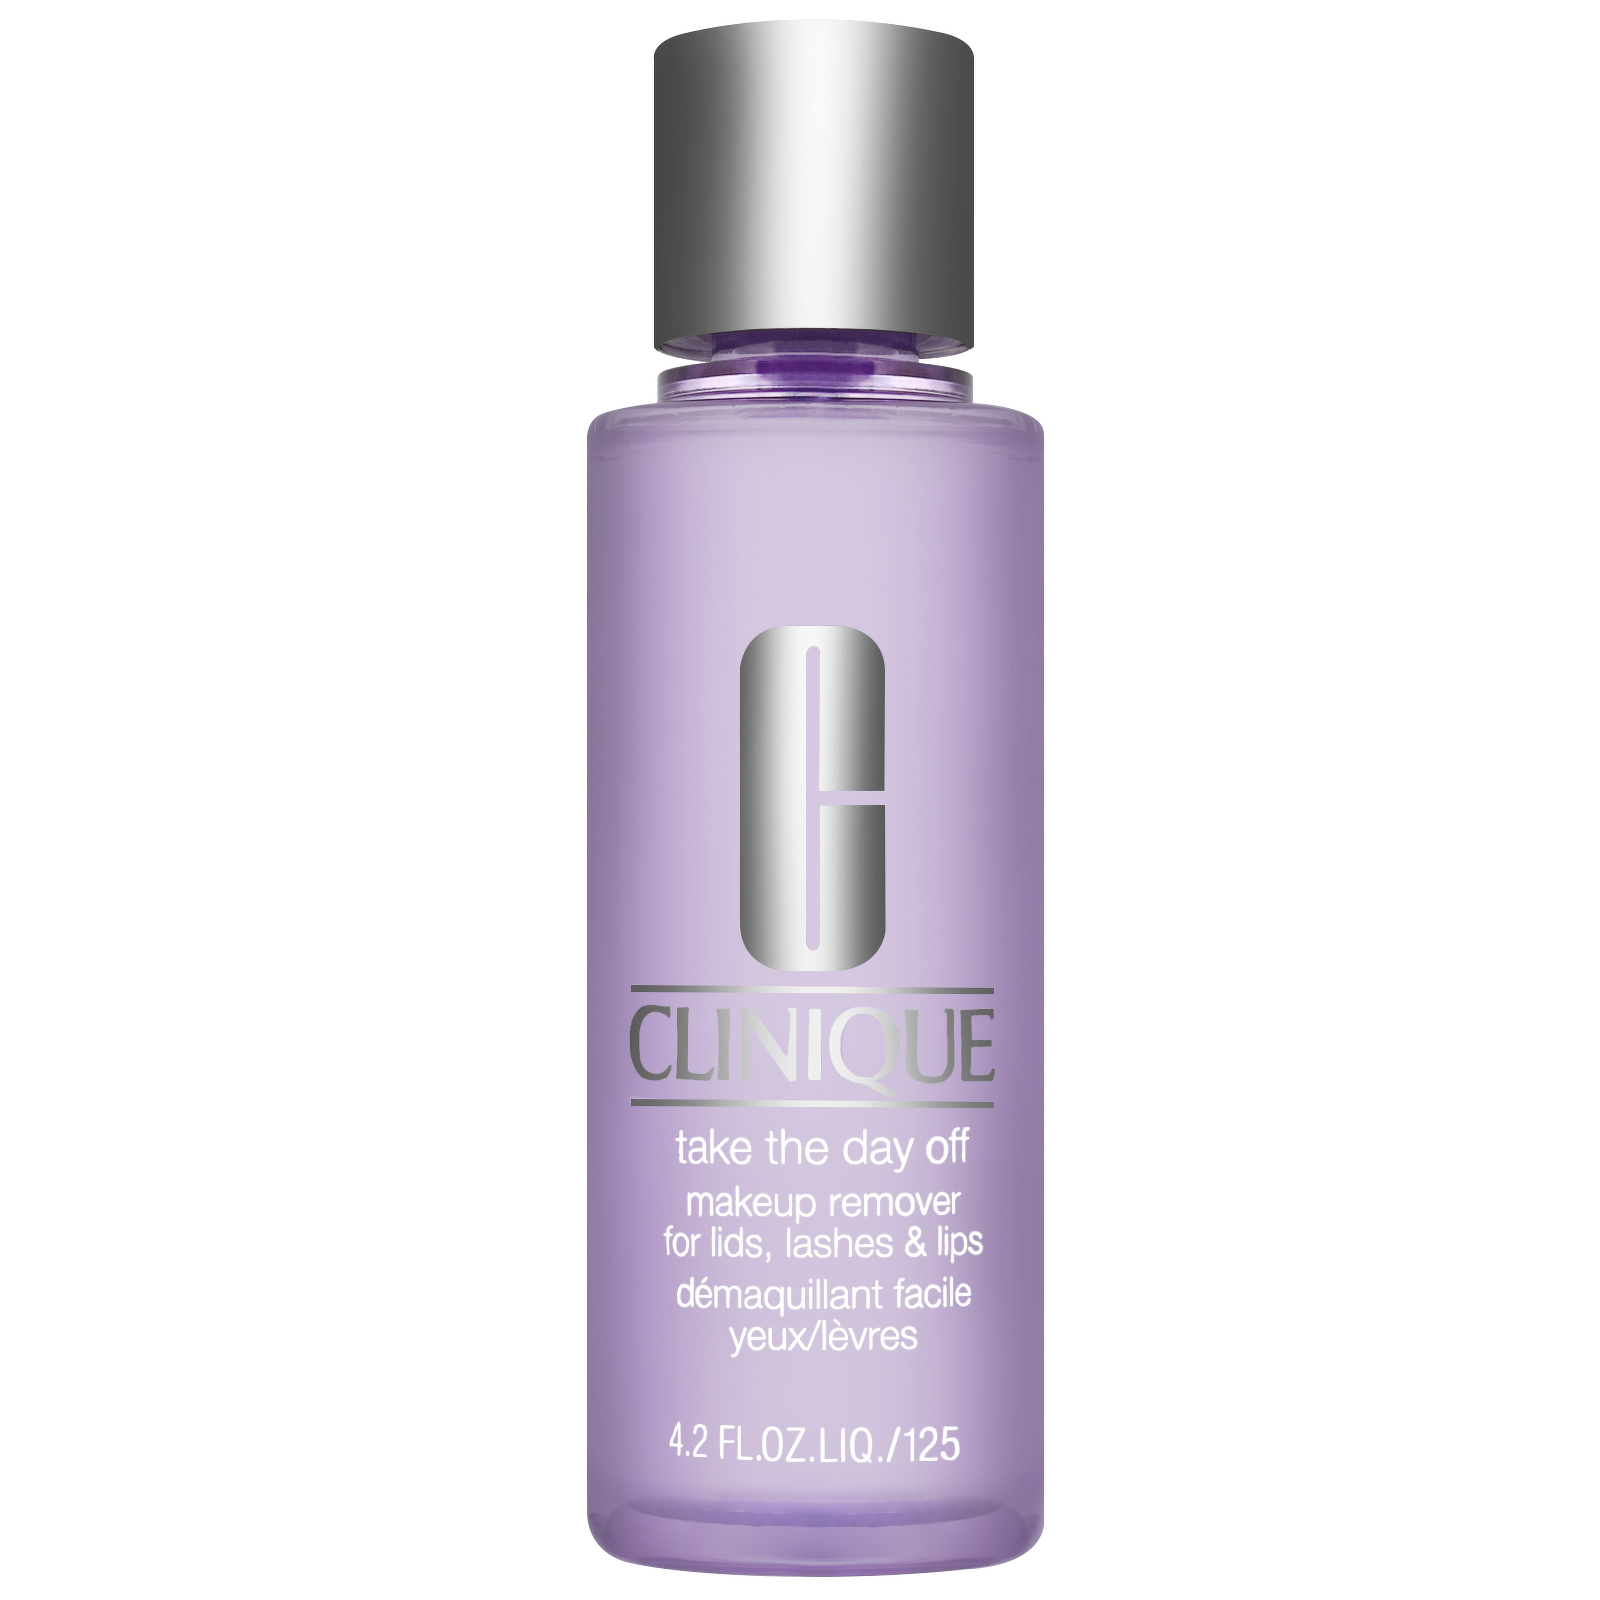 Clinique Cleansers & Makeup Removers Take The Day Off Makeup Remover for Lids, Lashes & Lips 125ml / 4.2 fl.oz.